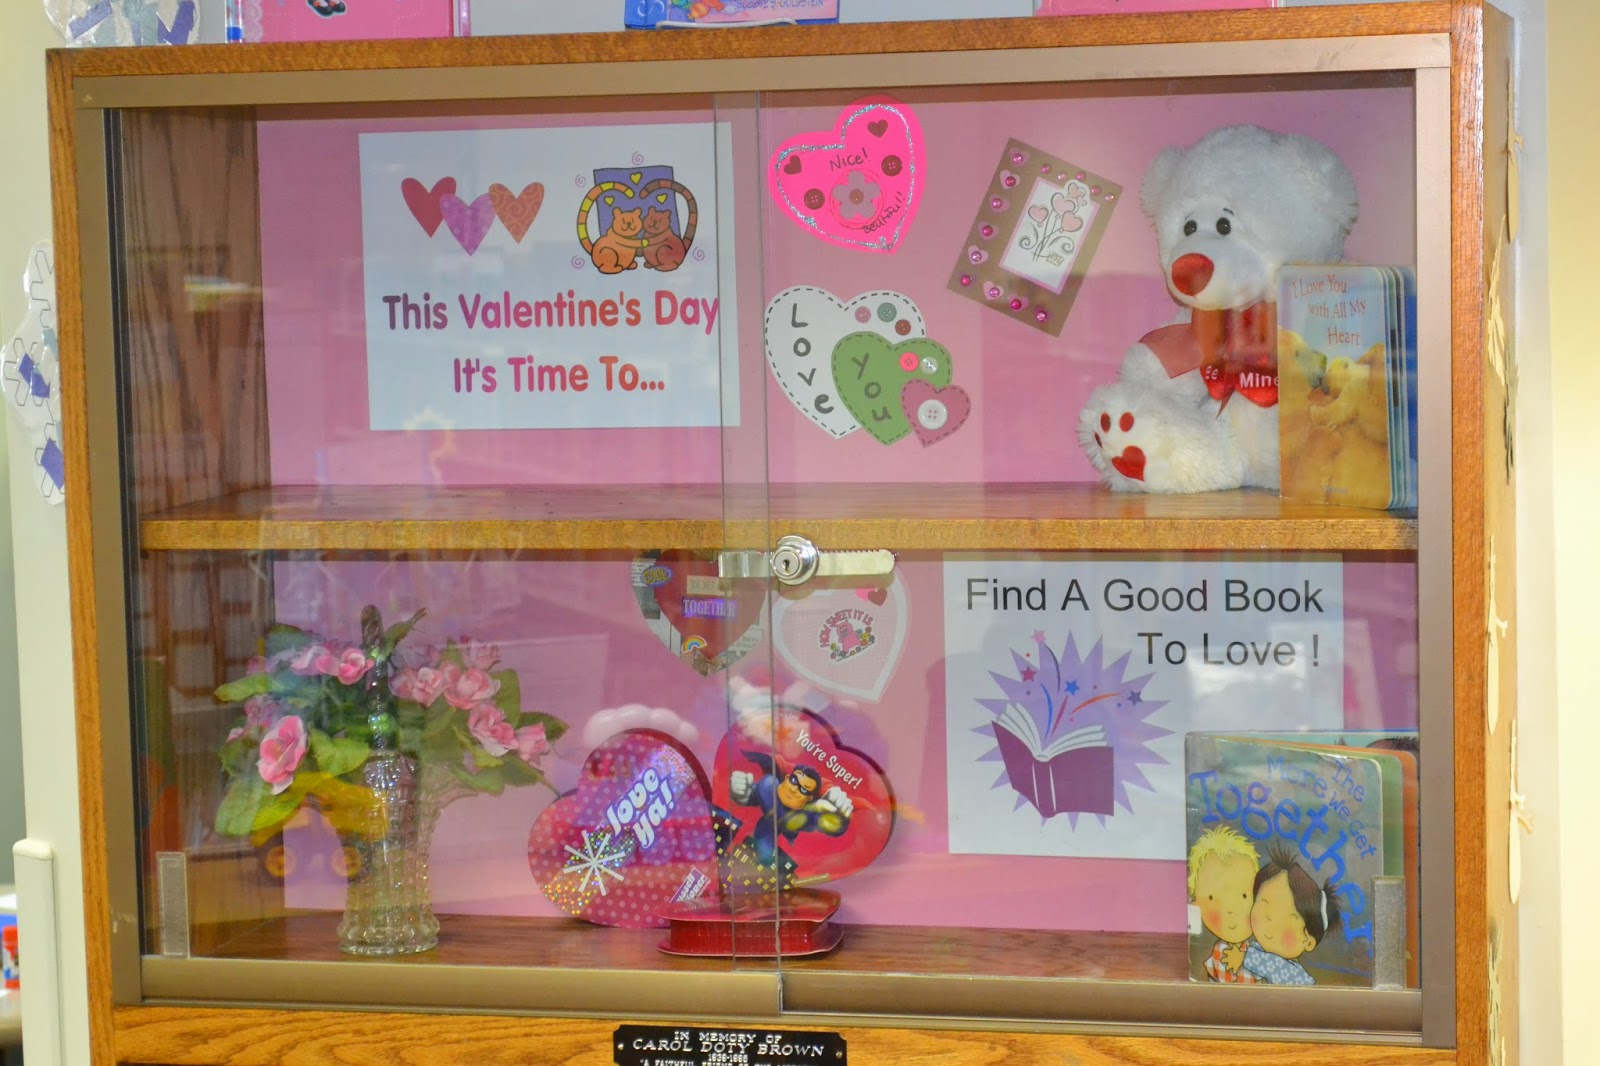 Aileen S Thoughts A Library Display Valentine S Day And